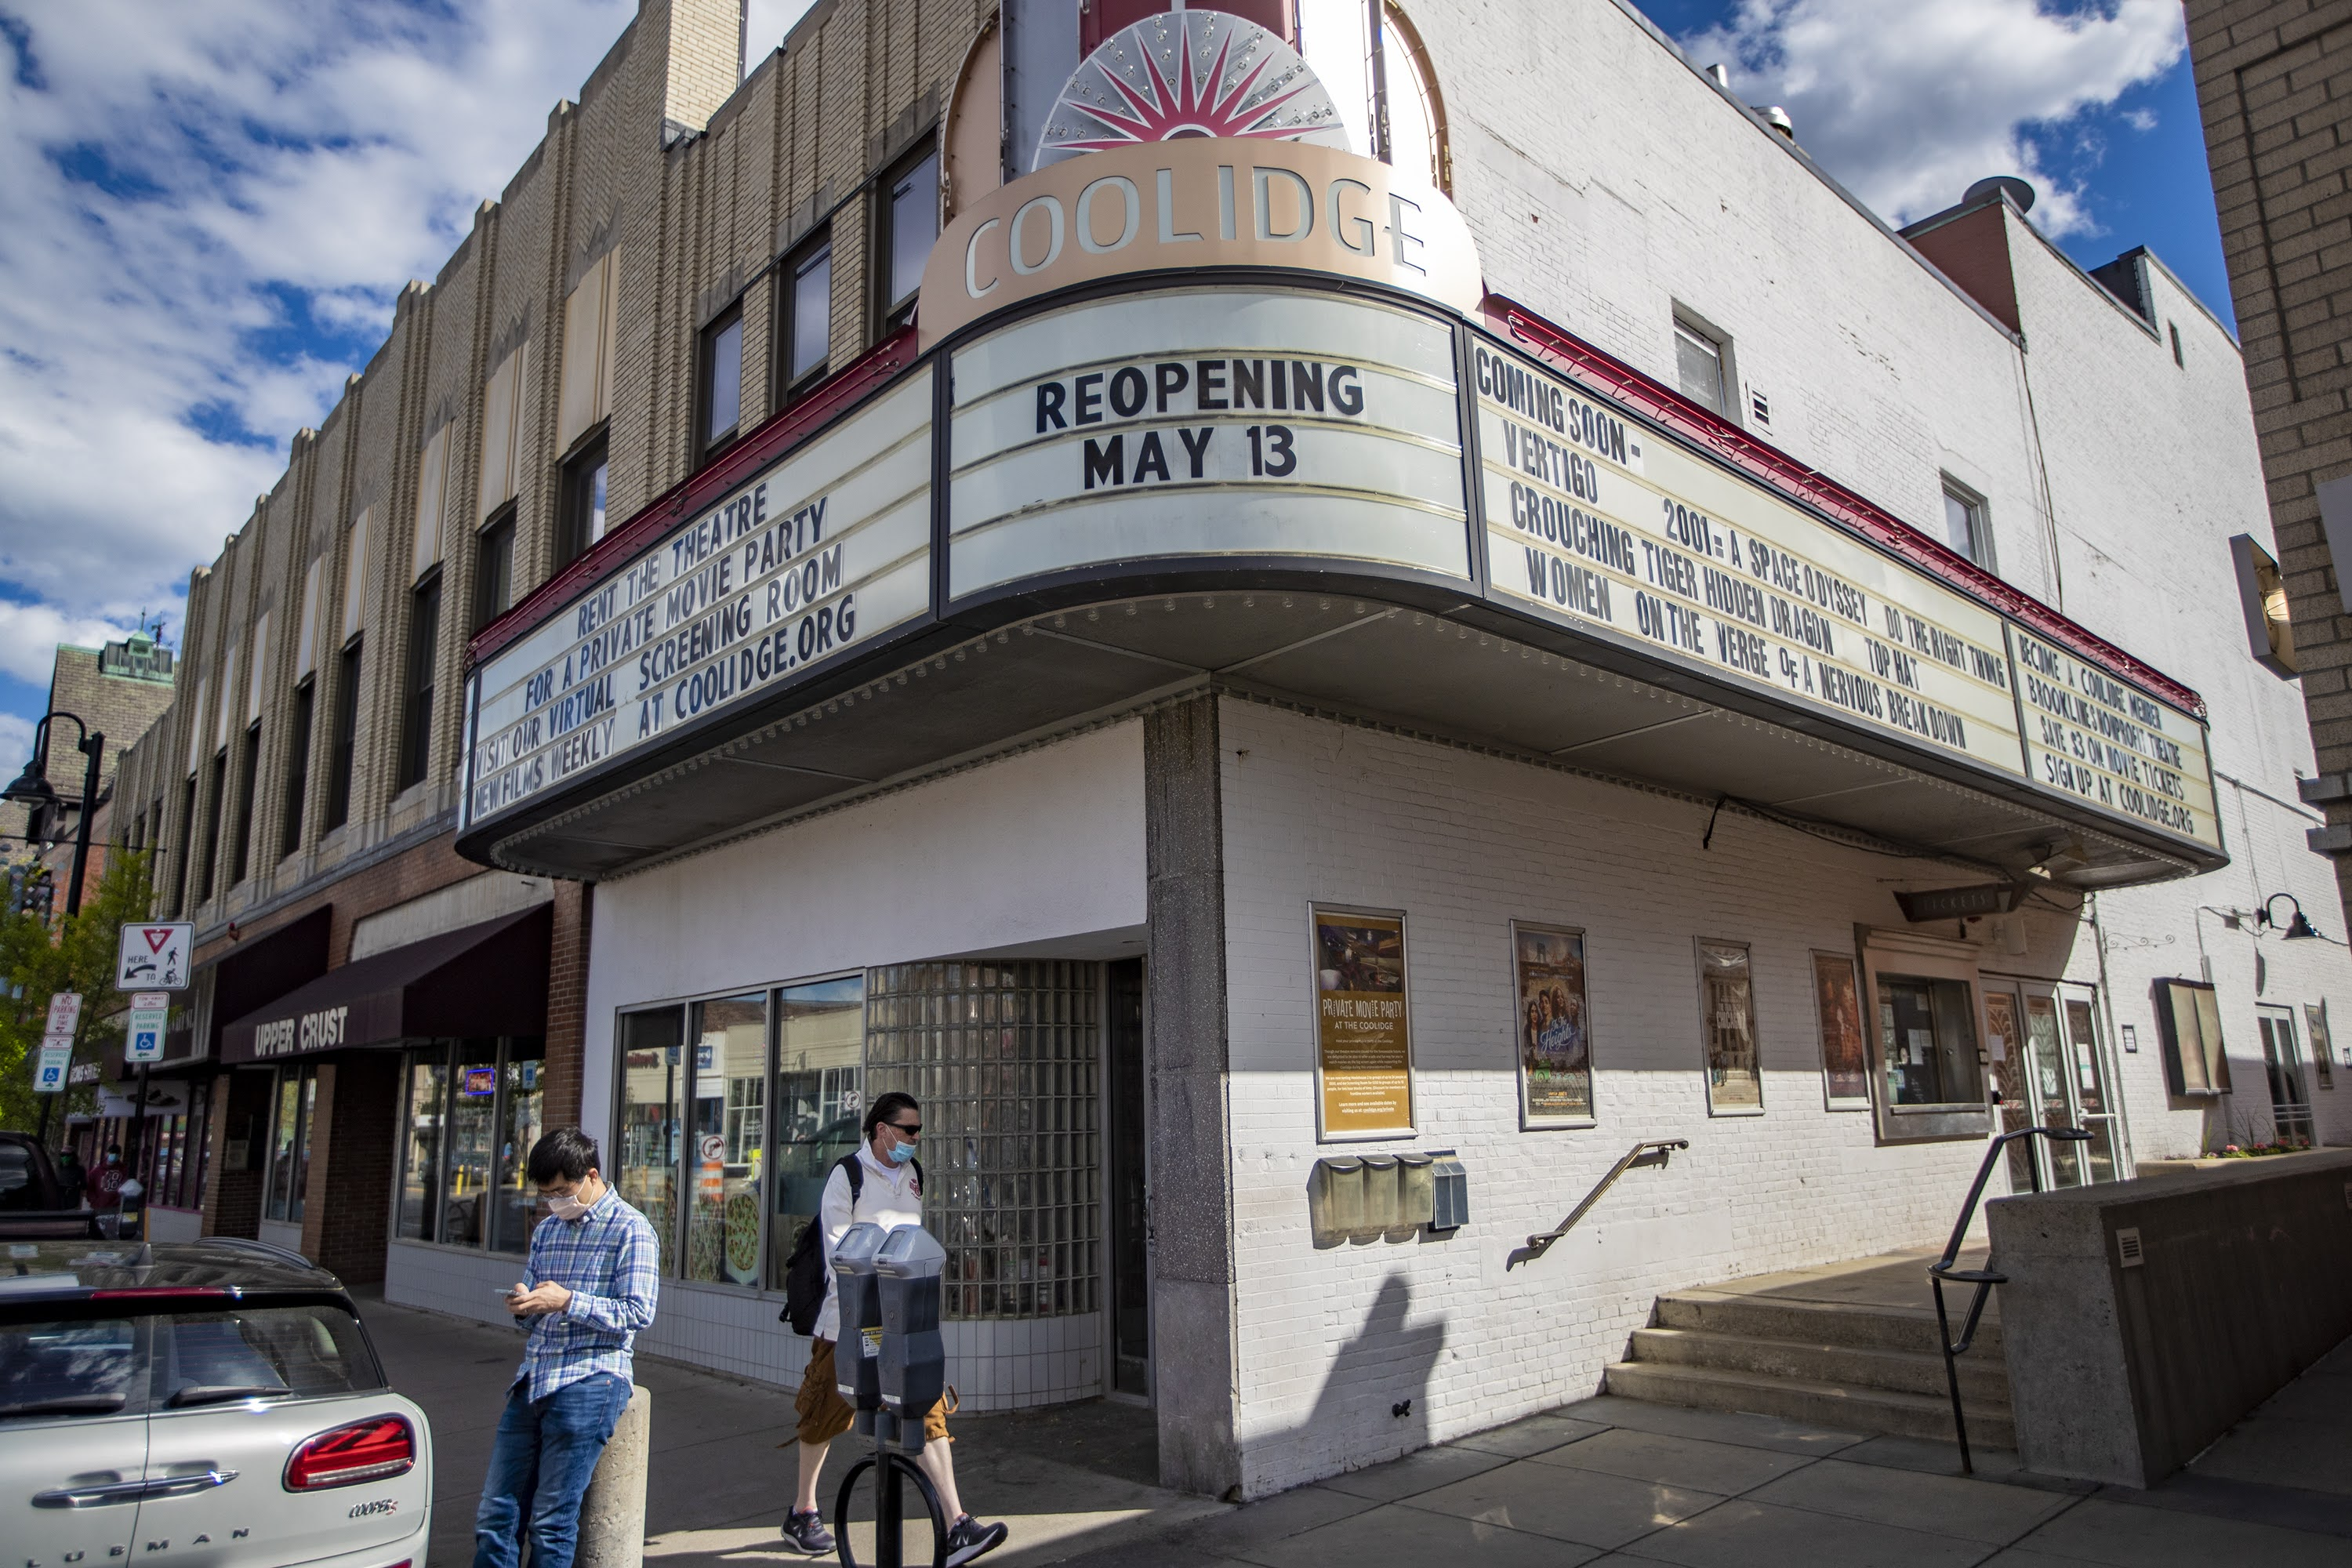 The marquee of the Coolidge Corner Theater annouces their reopening on May 13 after being closed to the public for 14 months due to the pandemic. (Jesse Costa/WBUR)